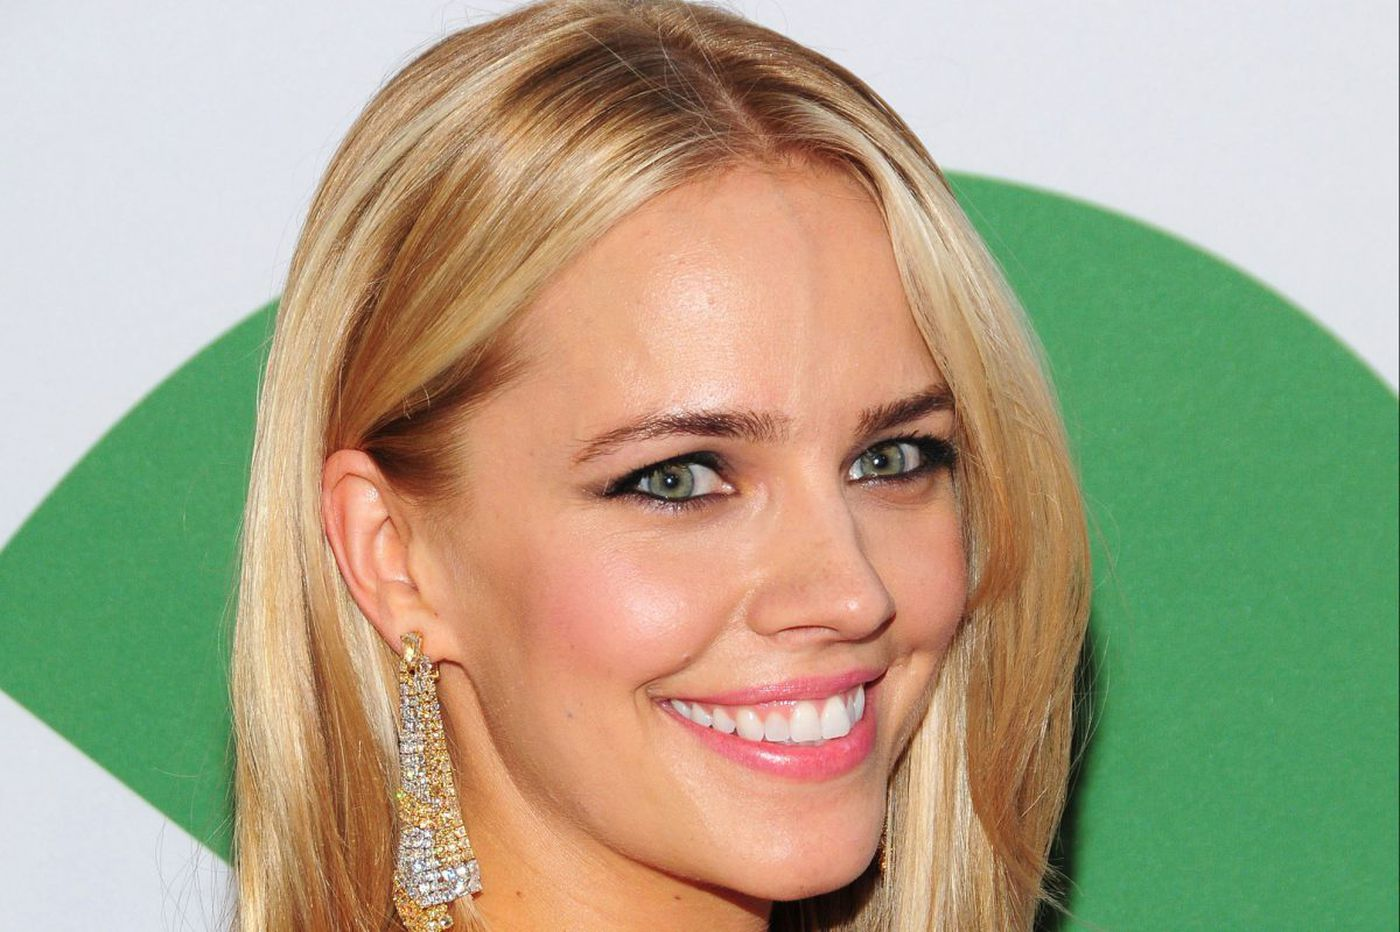 Northeast Philly native Jessica Barth says Harvey Weinstein sexually harassed her